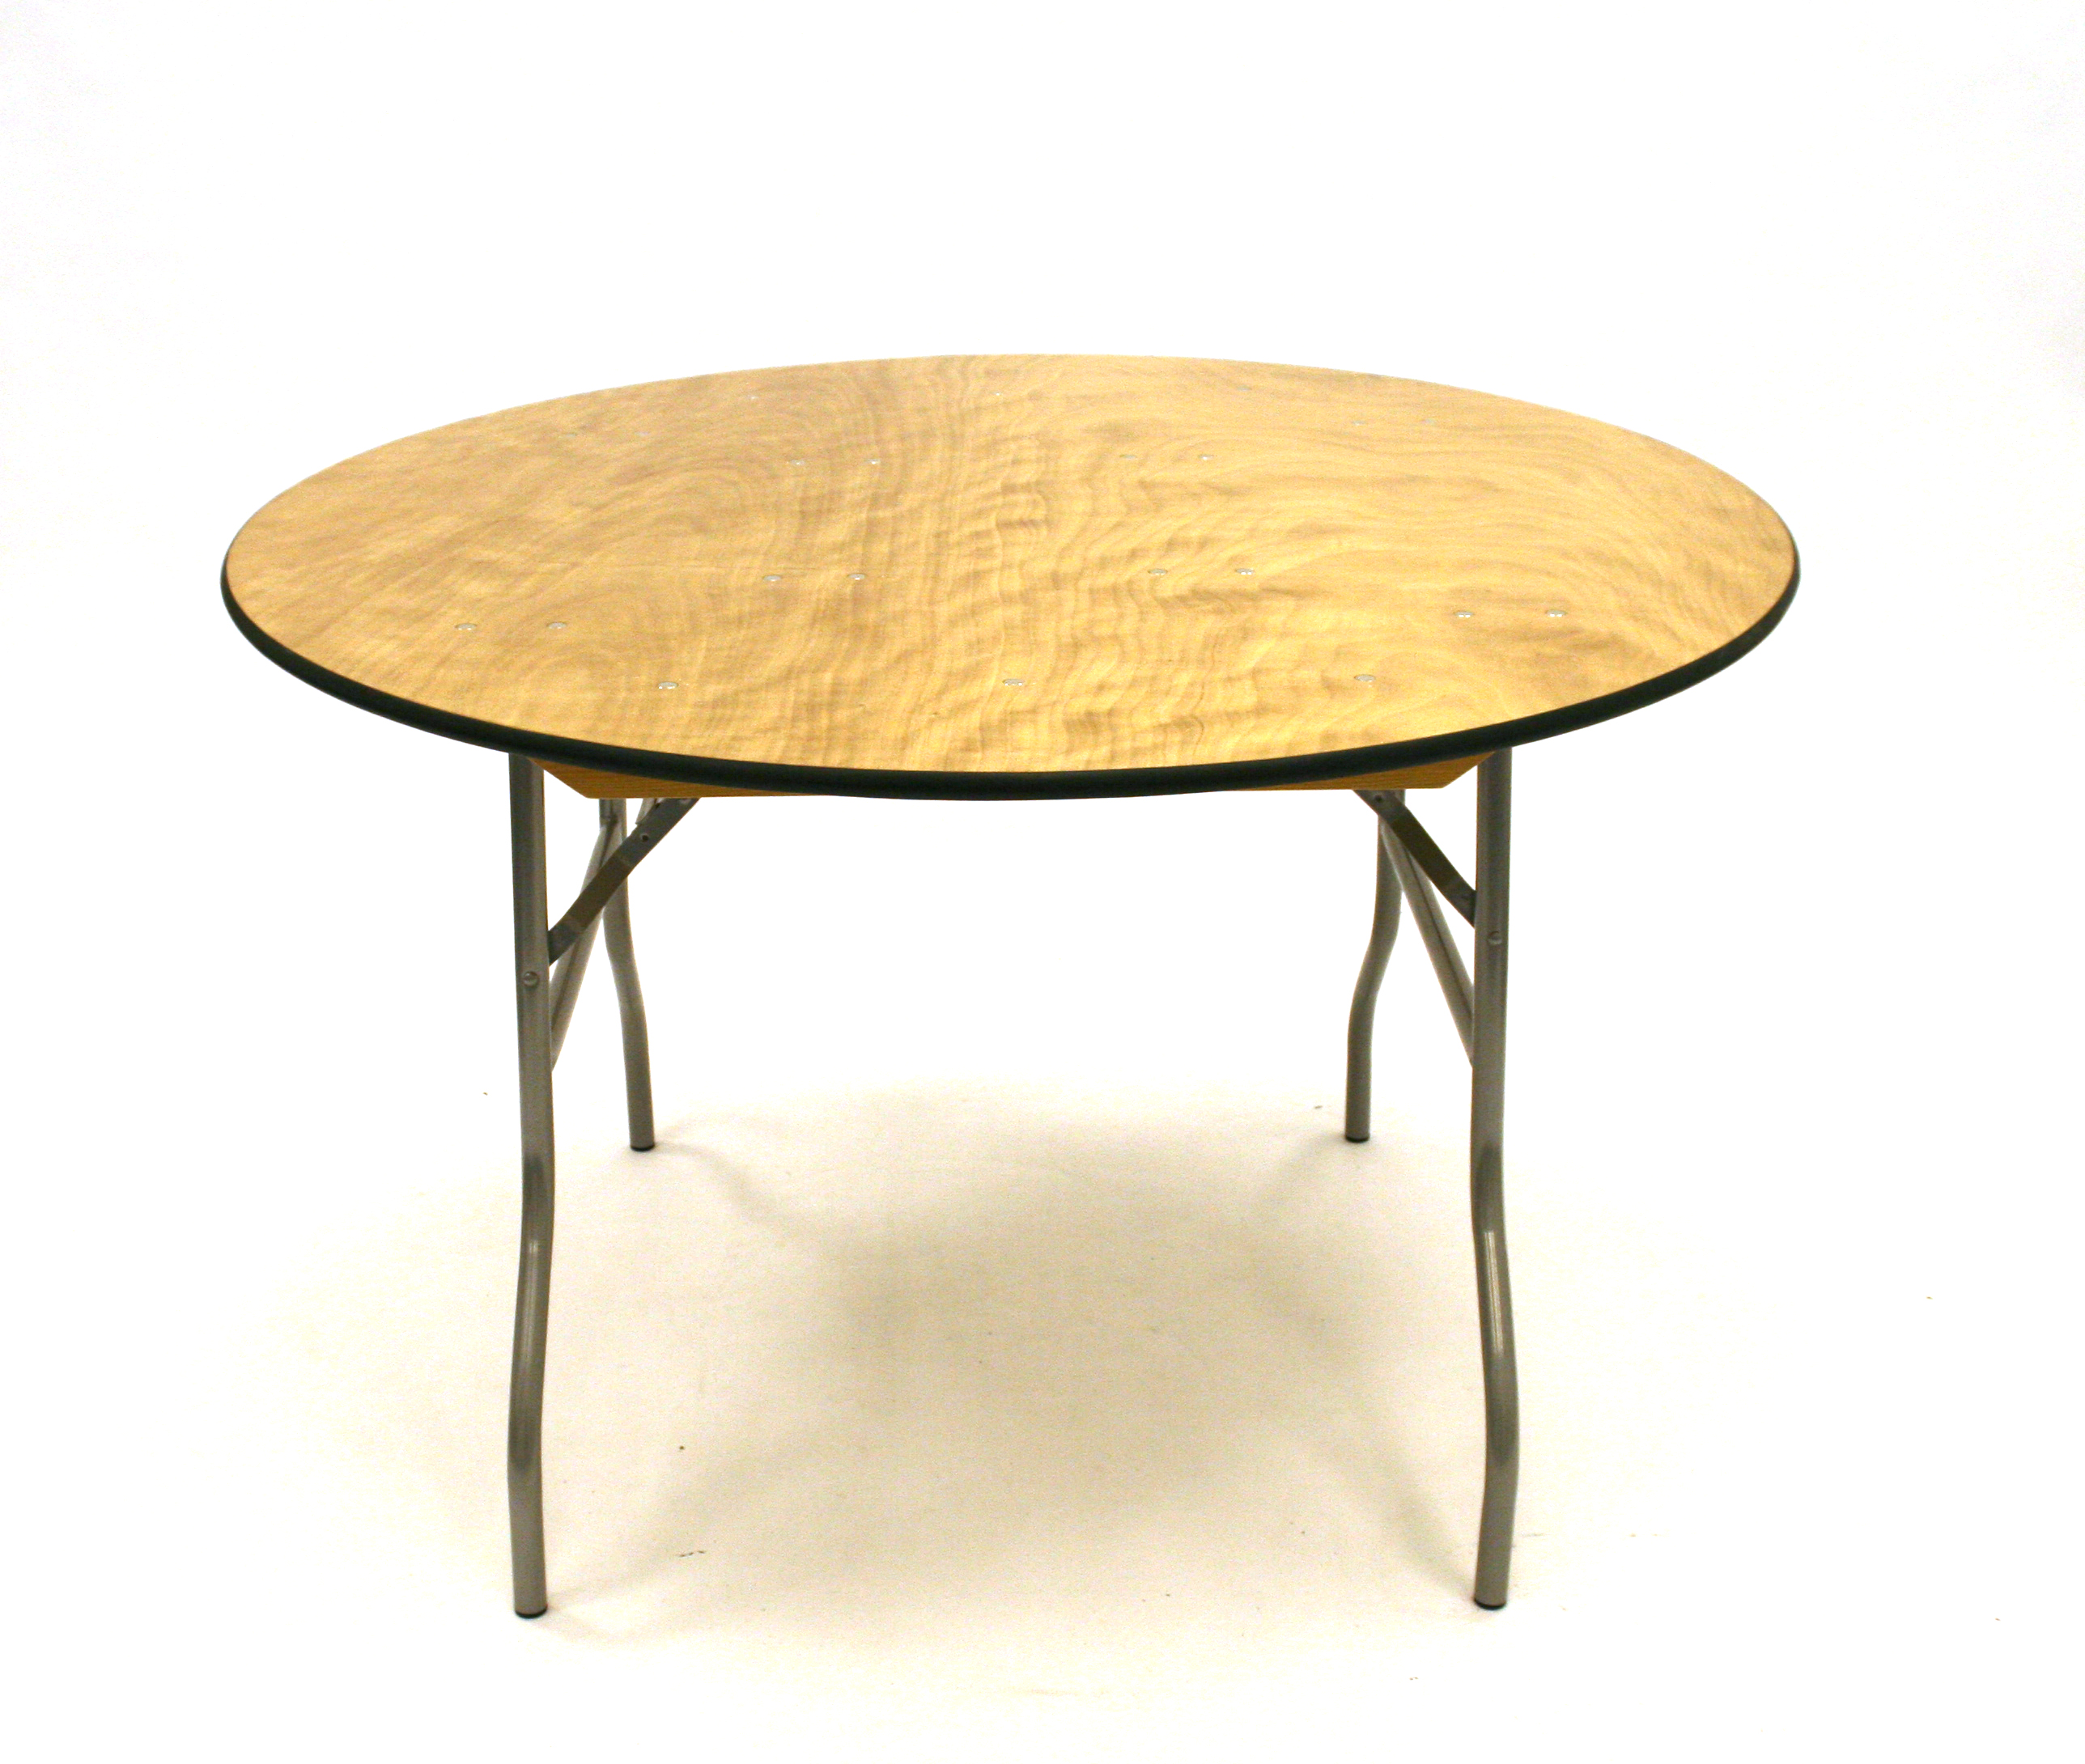 5'6'' Diameter Varnished Banquet Table - BE Event Hire